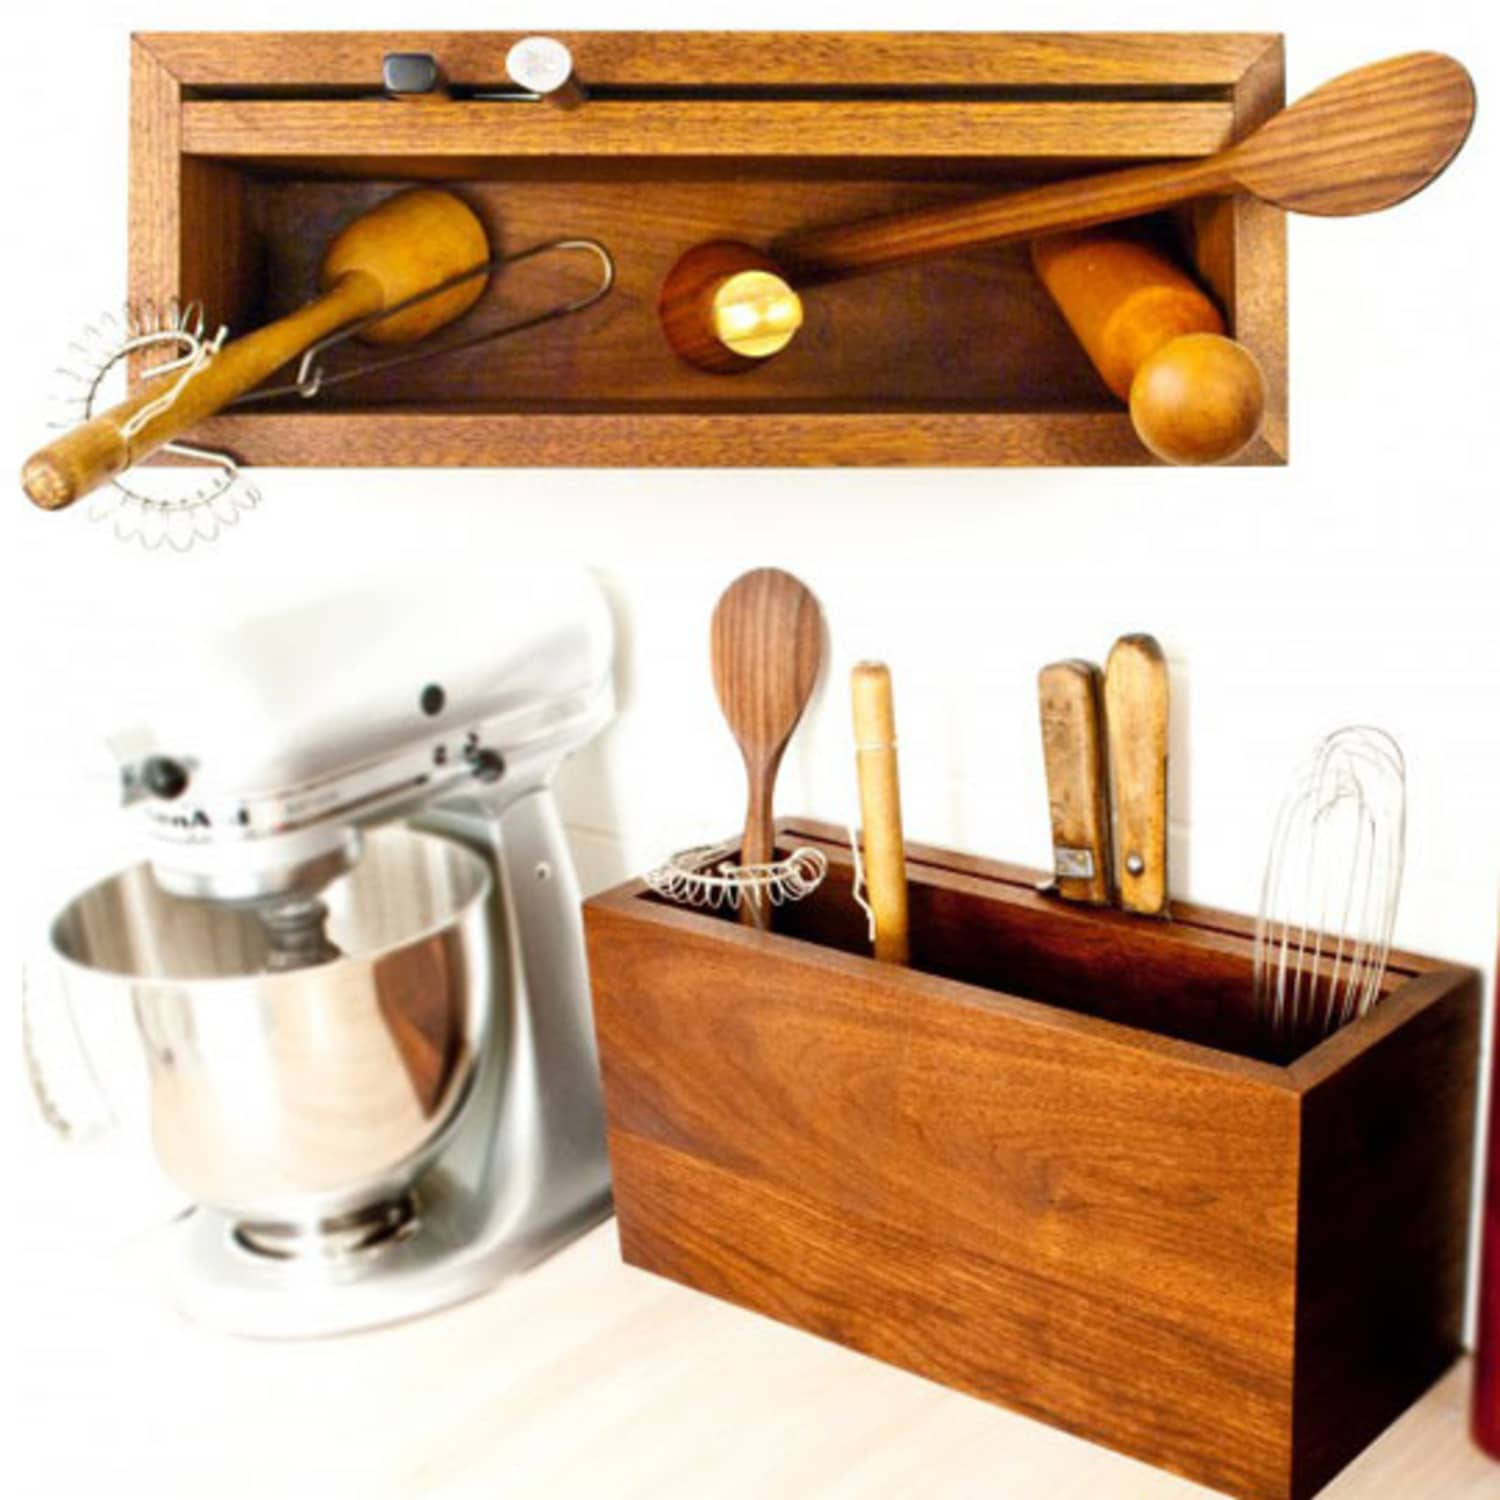 Kitchen Accessory: On Our Table: Beautiful Handmade Cutting Boards & Wooden